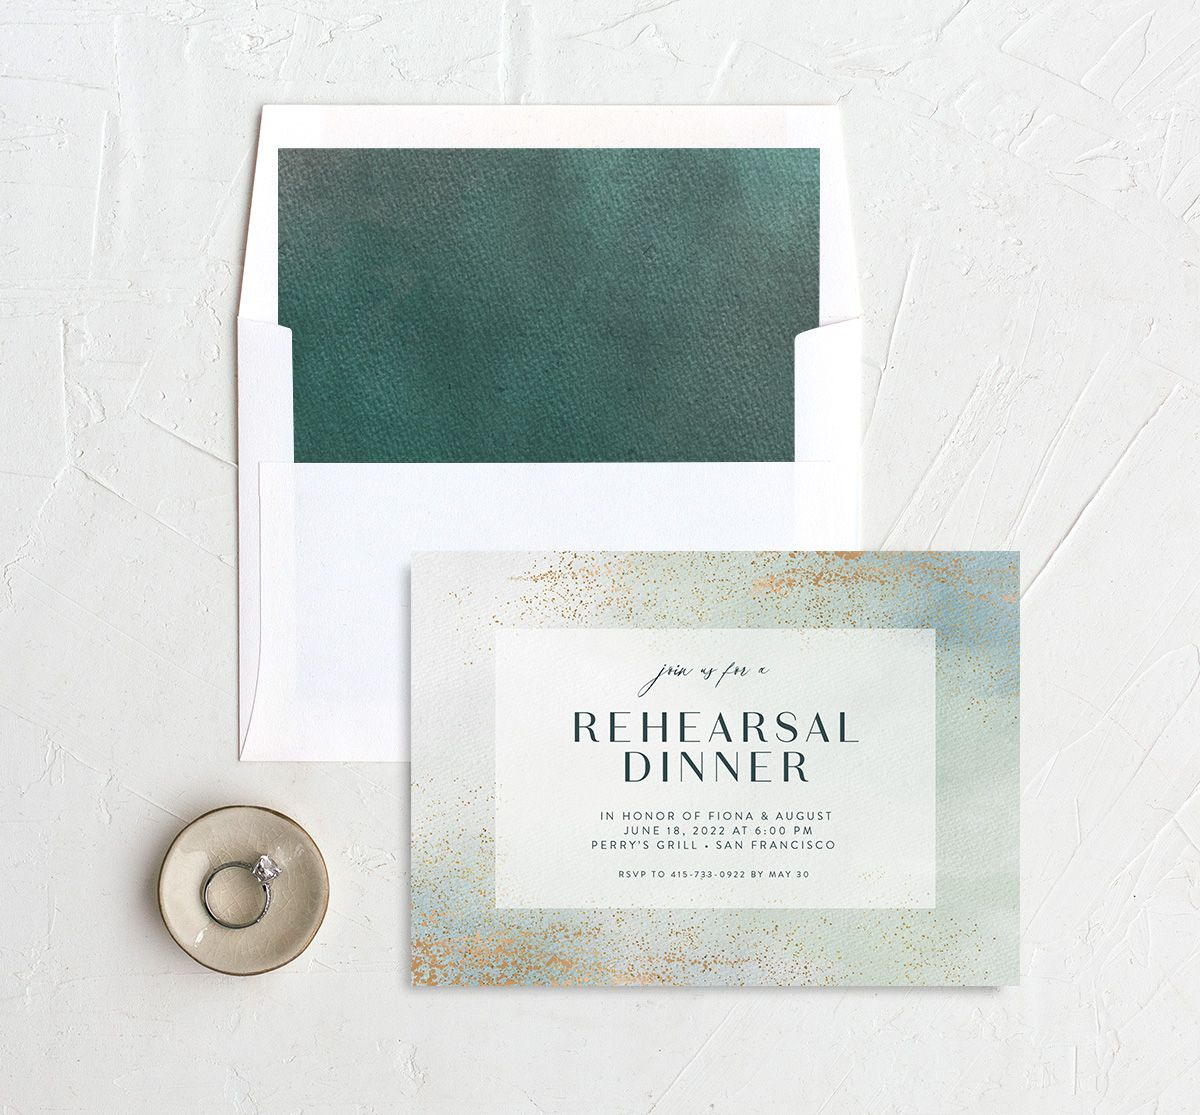 Awash rehearsal dinner invitation with liner green